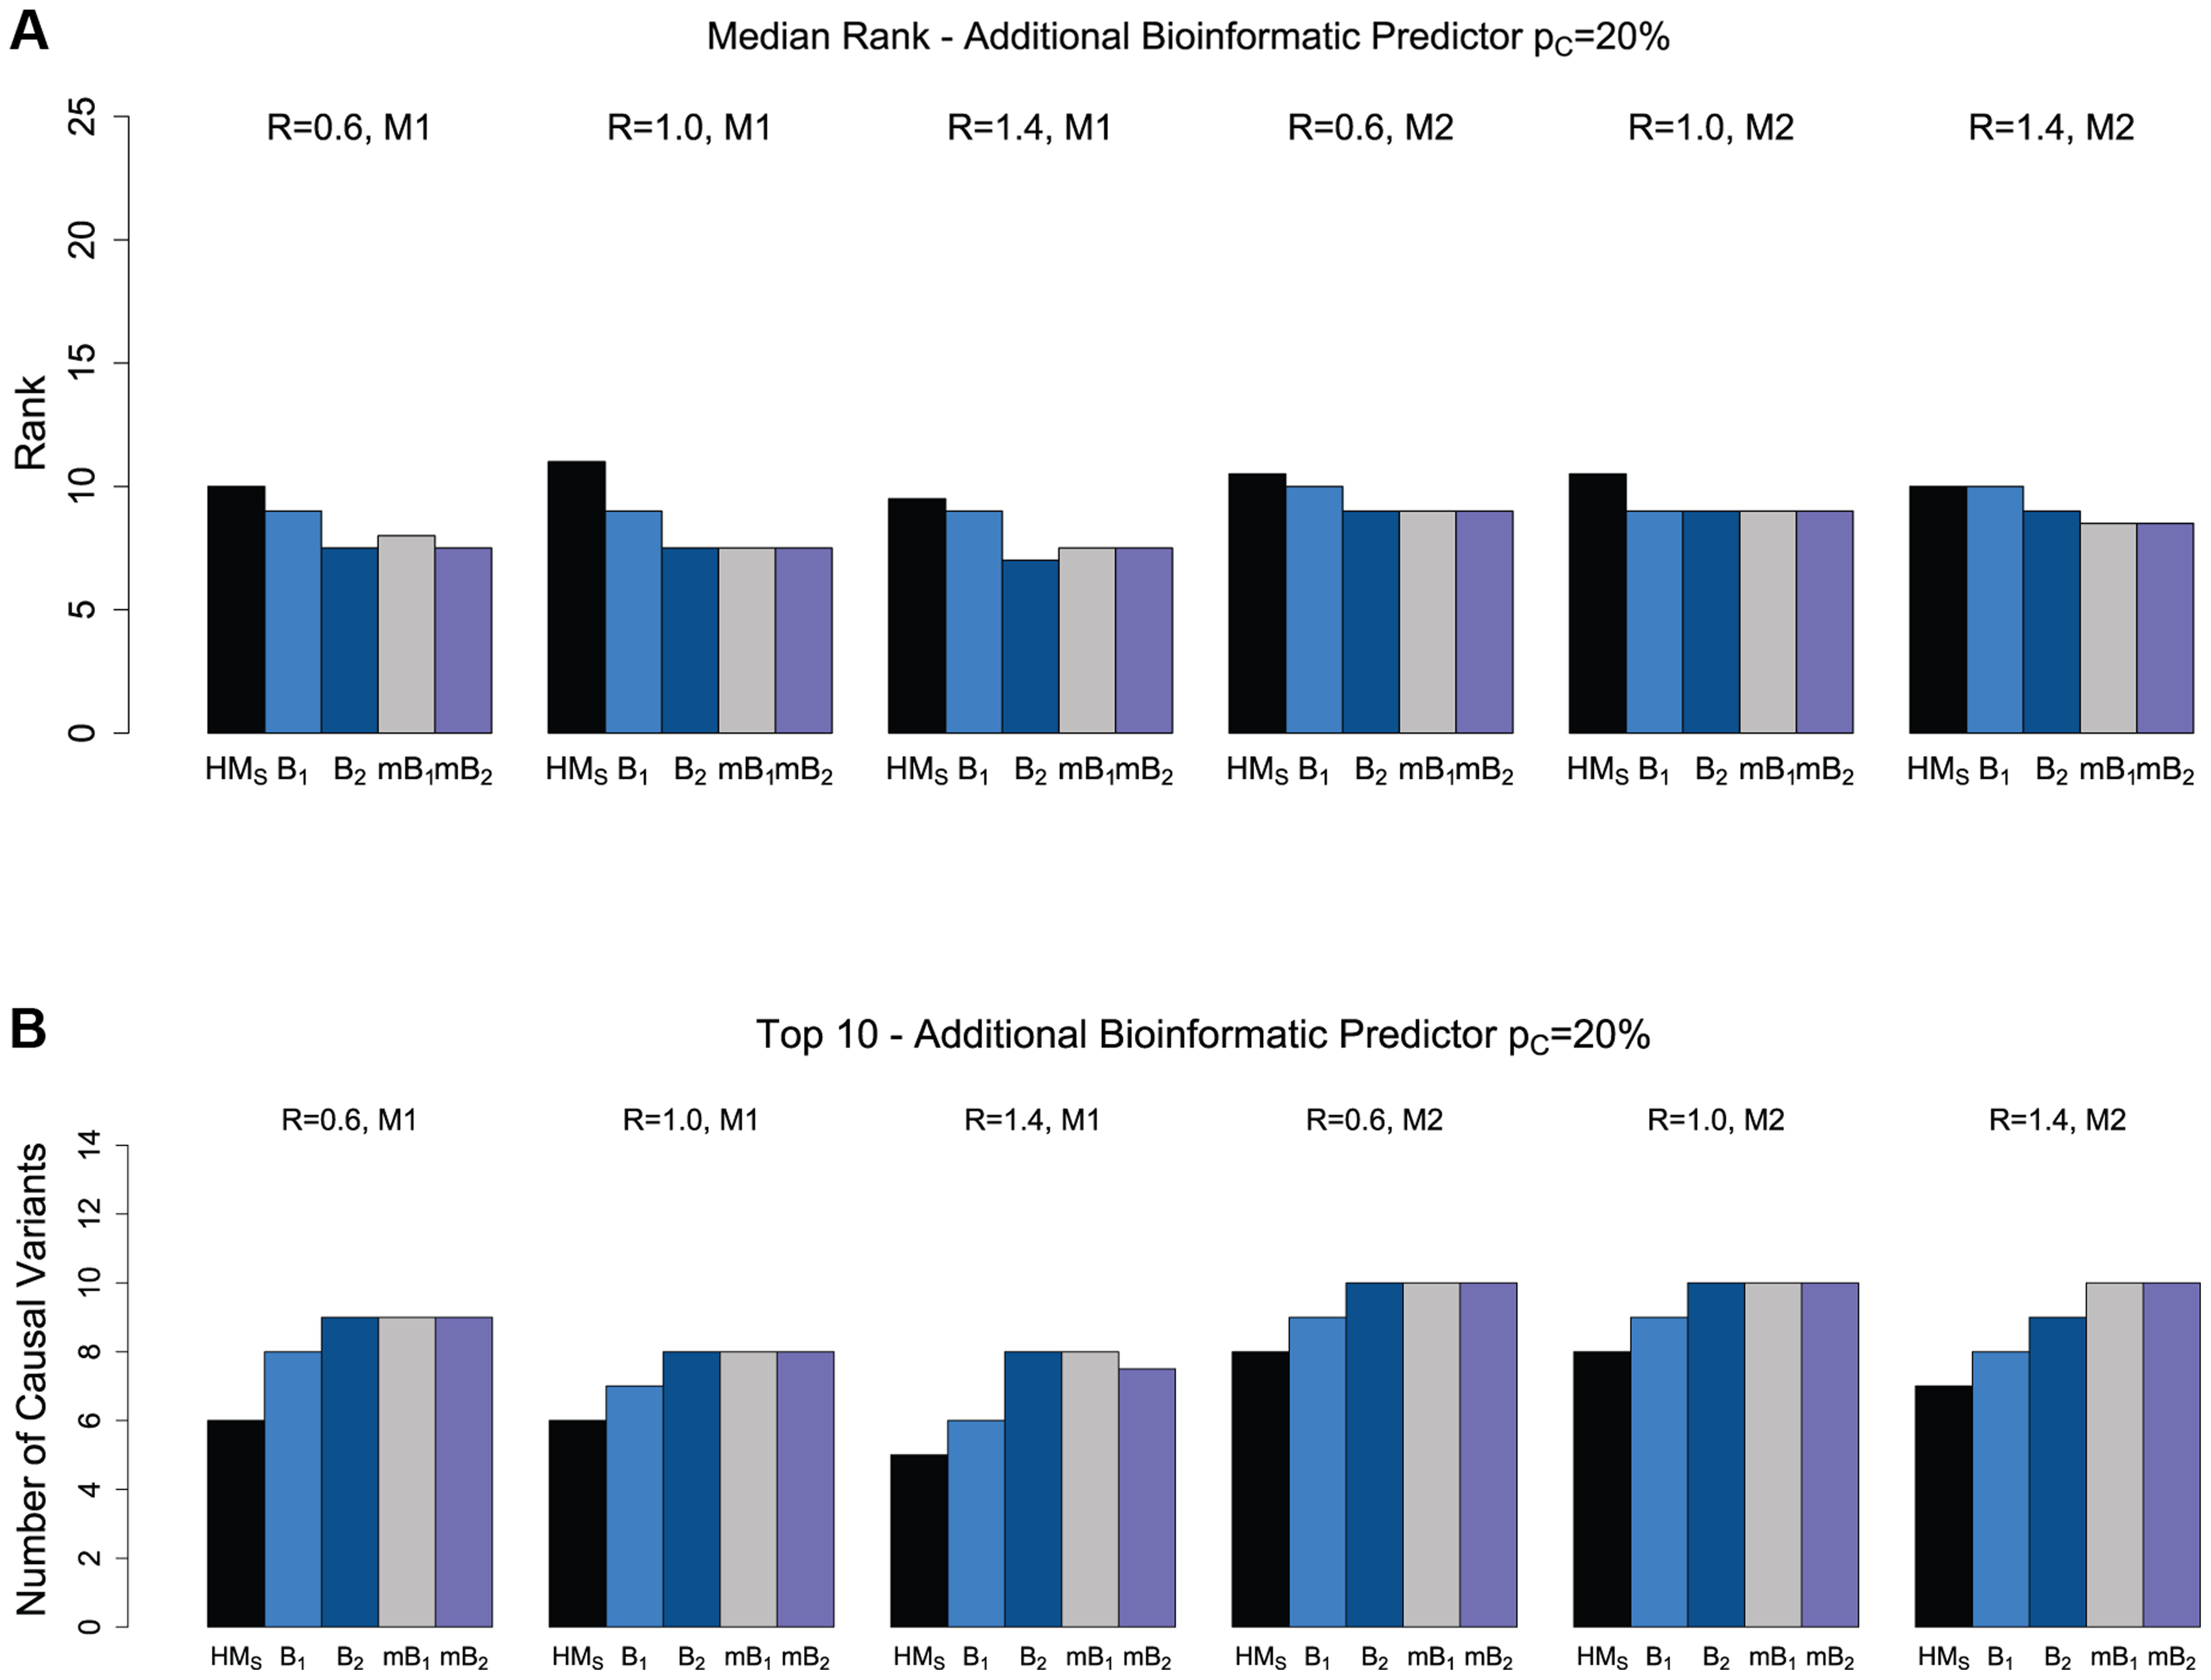 The effect of multiple bioinformatic predictors for non-synonymous variants.